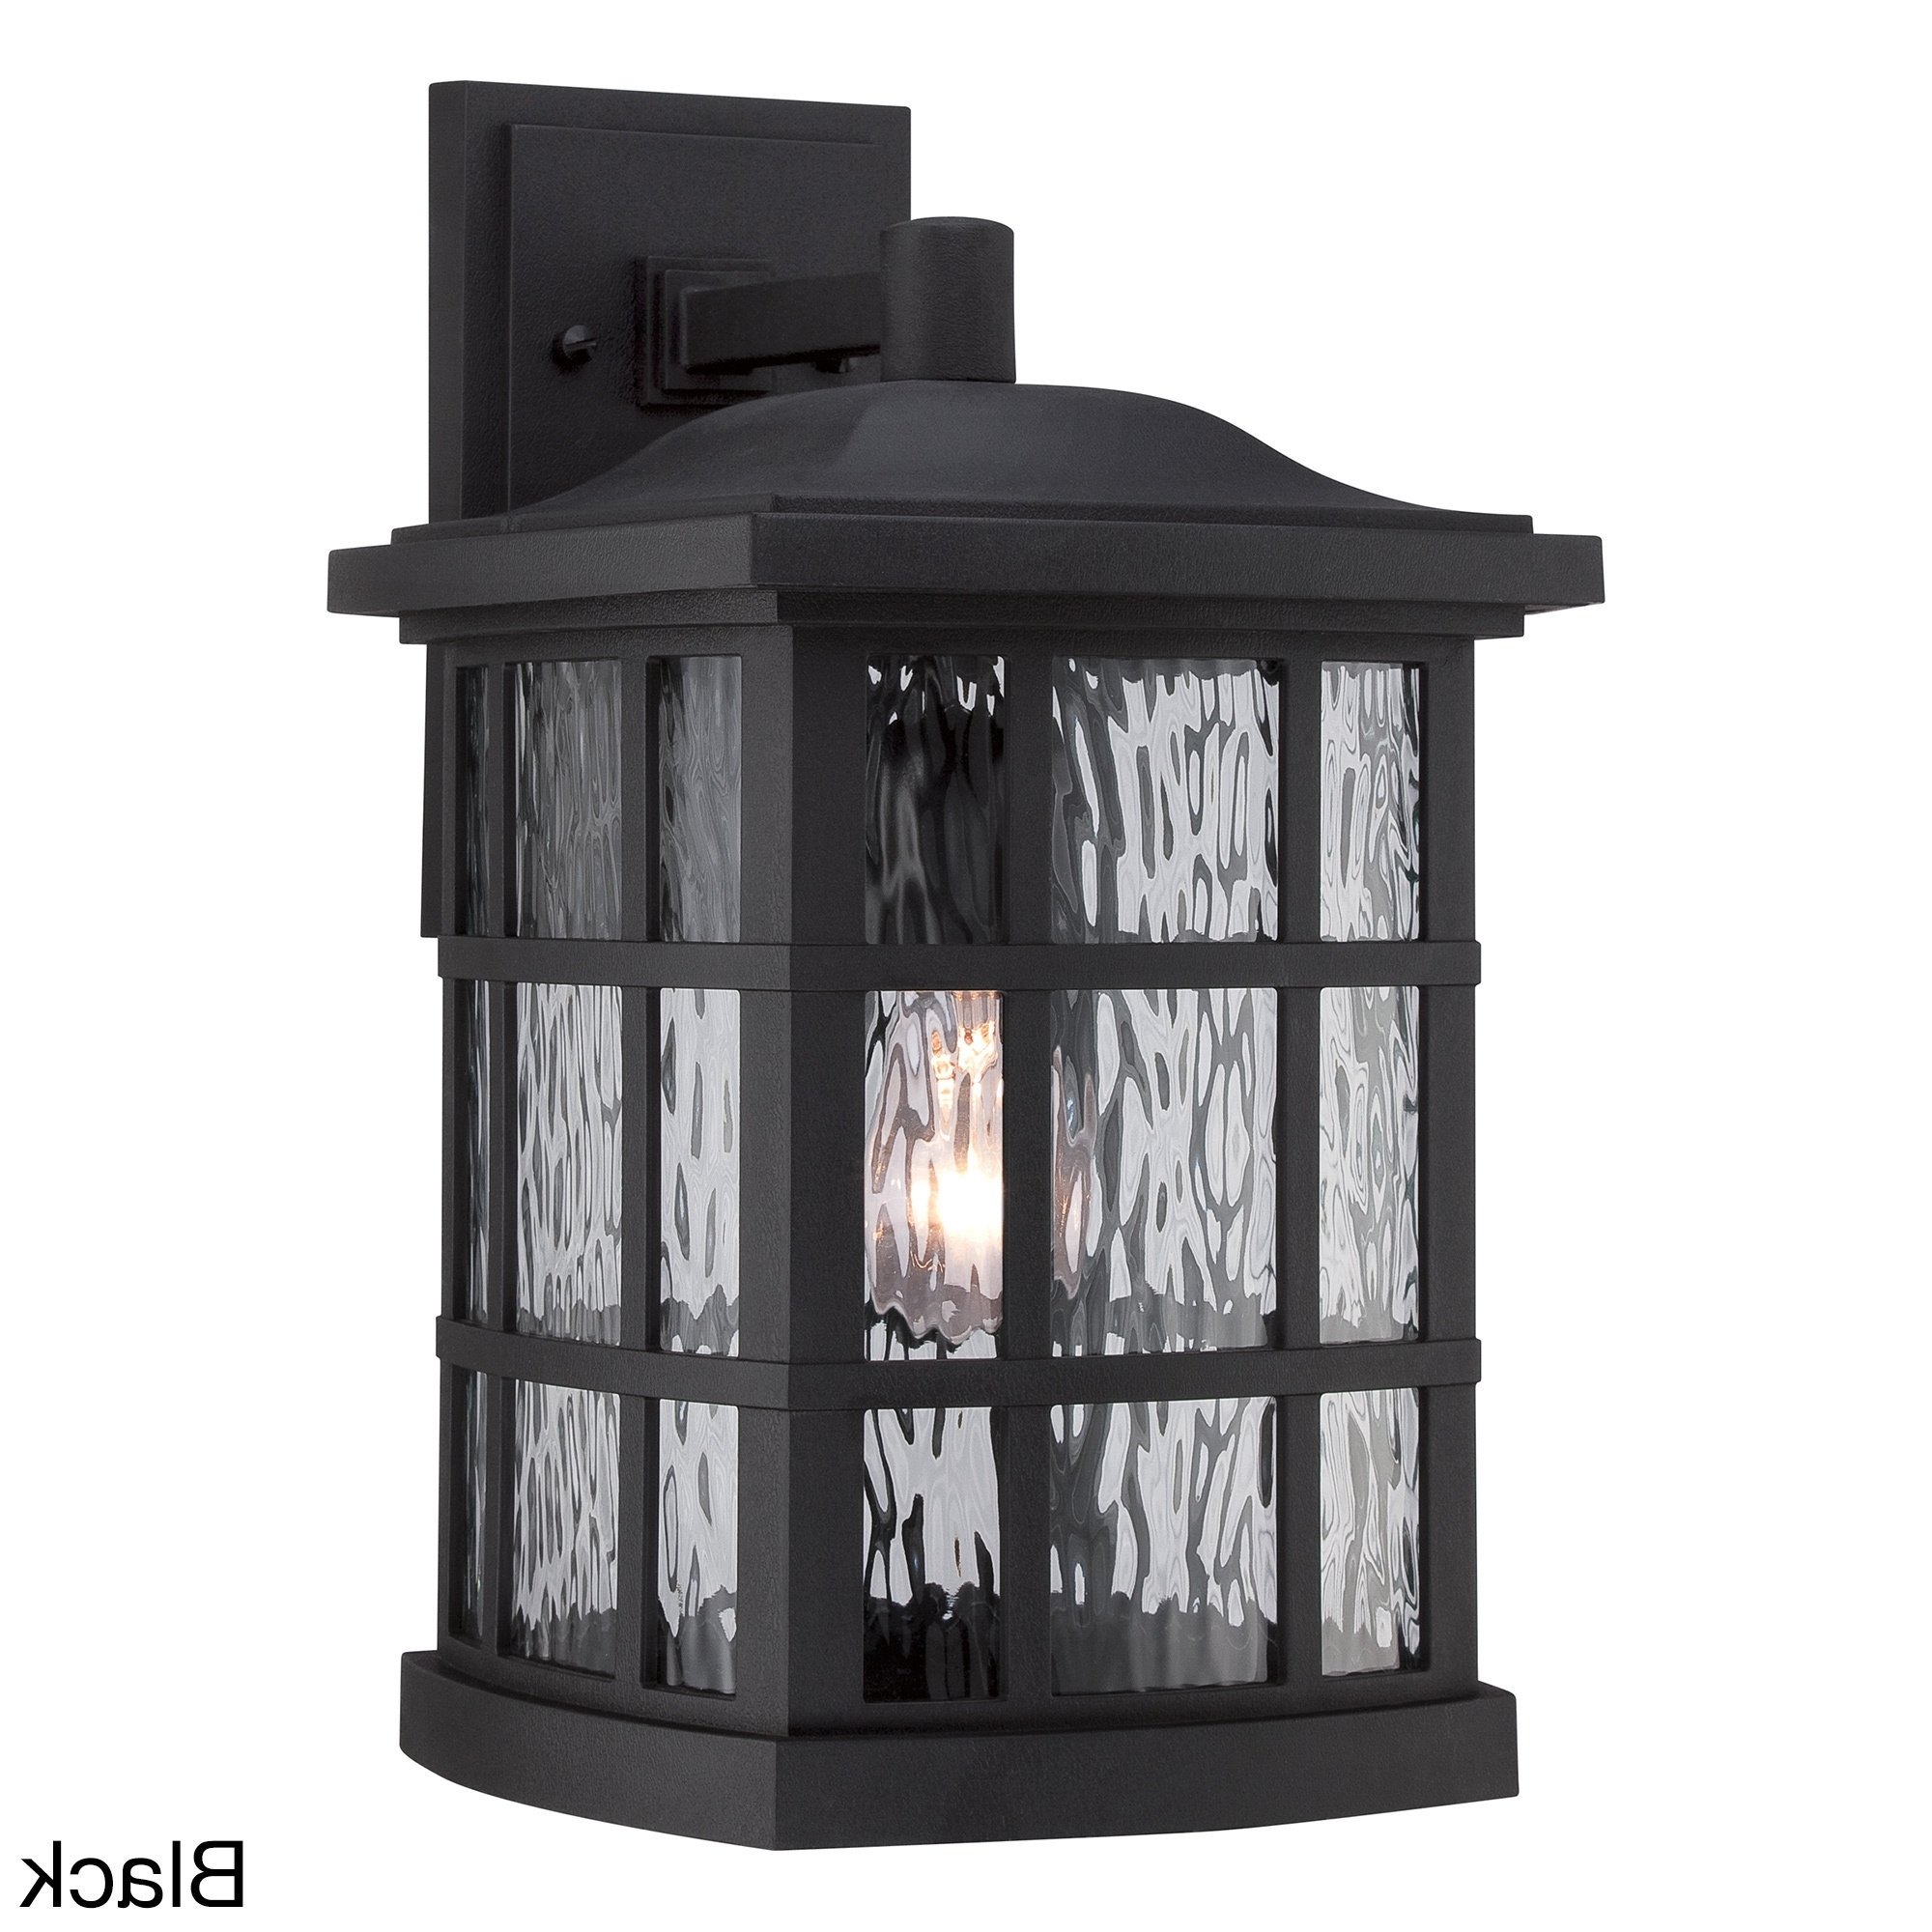 Quoizel Outdoor Wall Lighting Inside Current Quoizel Coastal Armour Stonington 1 Light Mystic Black Large Wall (View 11 of 20)